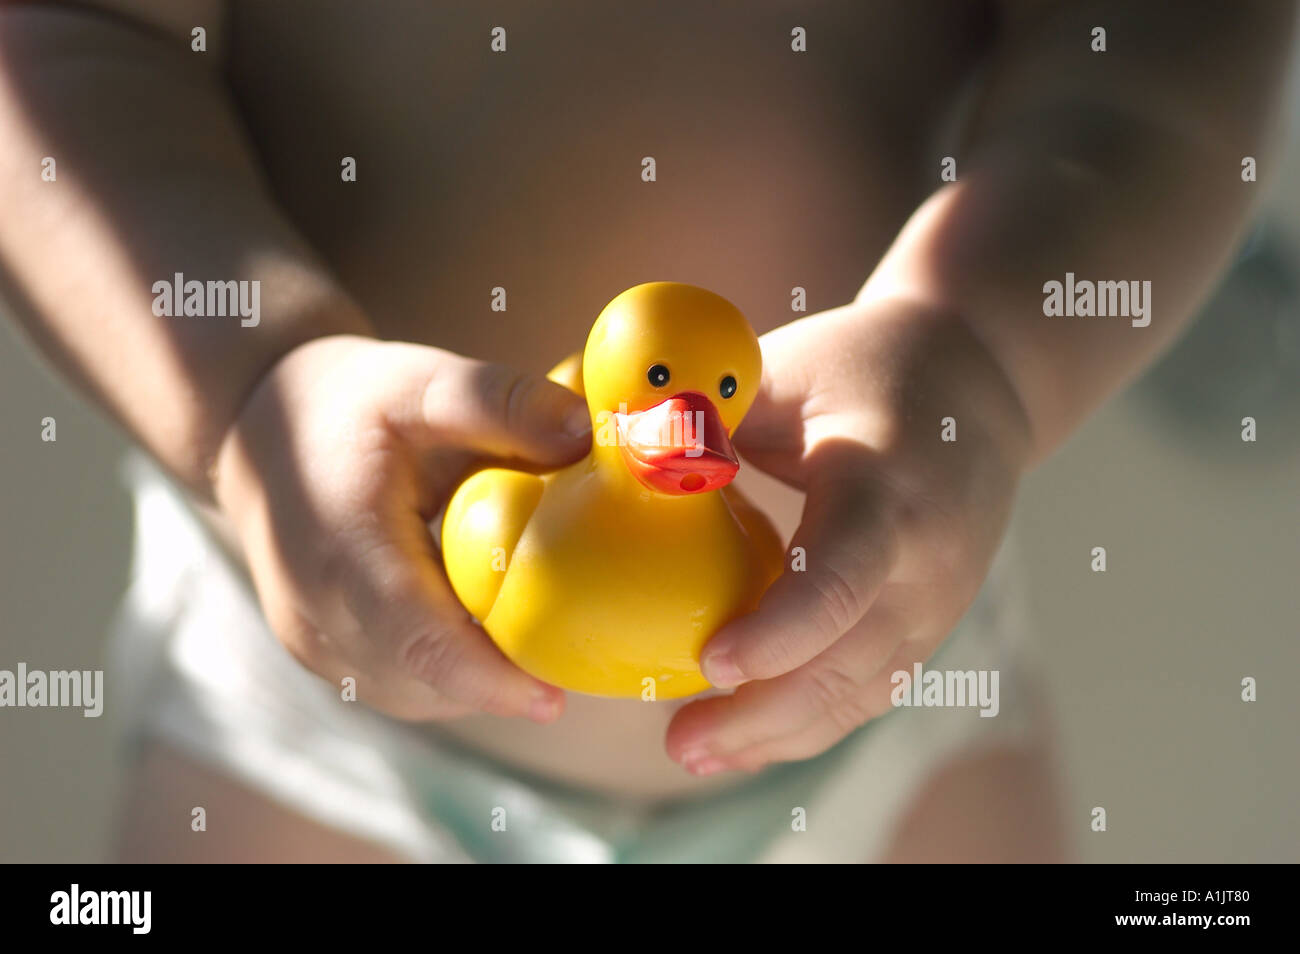 Closeup Baby Holding Duck Toy Stock Photos & Closeup Baby Holding ...